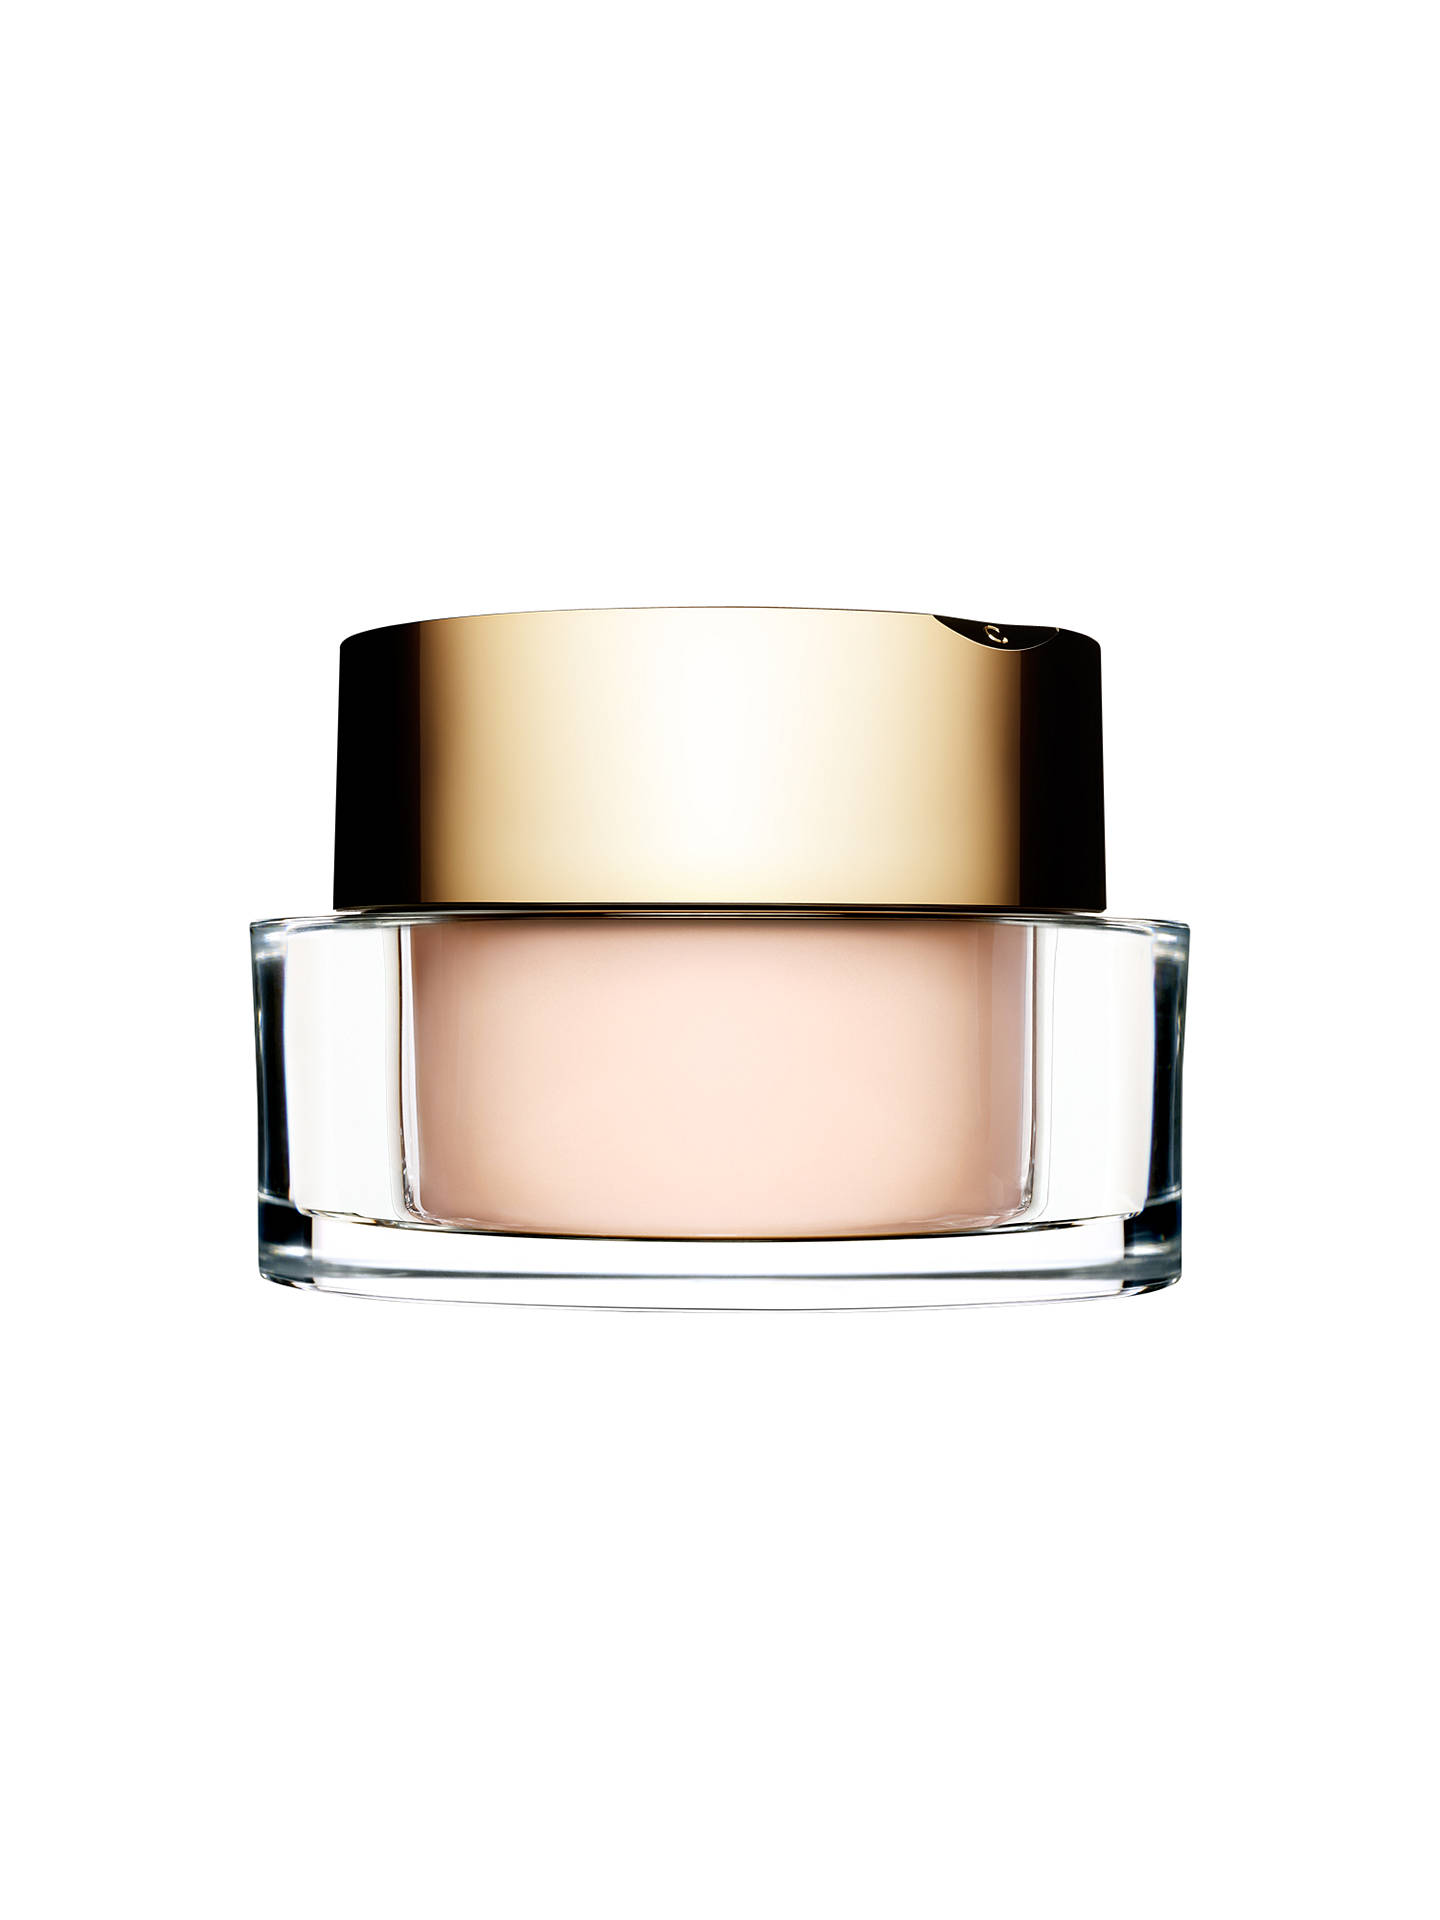 BuyClarins New Mineral Loose Powder, 03 Transparent Warm Online at johnlewis.com